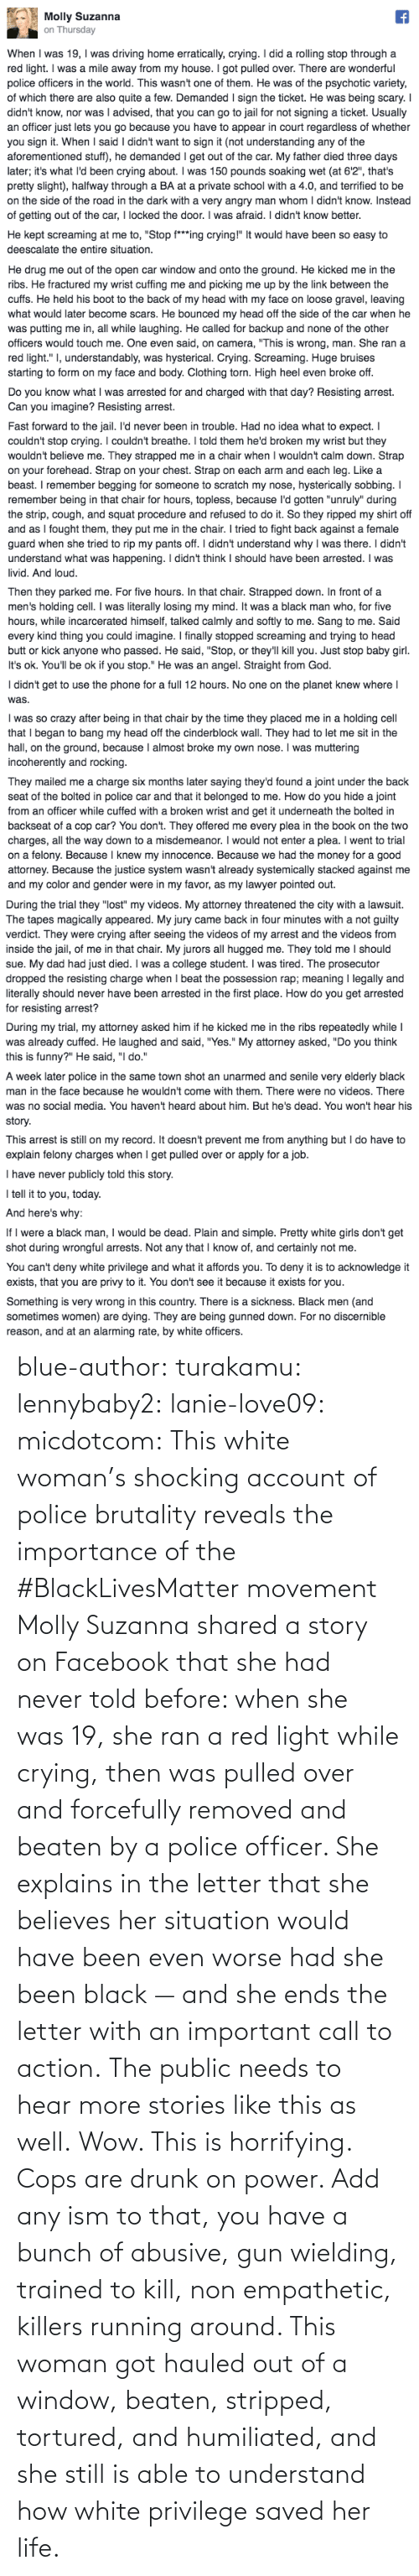 Drunk: blue-author: turakamu:  lennybaby2:  lanie-love09:  micdotcom:  This white woman's shocking account of police brutality reveals the importance of the #BlackLivesMatter movement Molly Suzanna shared a story on Facebook that she had never told before: when she was 19, she ran a red light while crying, then was pulled over and forcefully removed and beaten by a police officer. She explains in the letter that she believes her situation would have been even worse had she been black — and she ends the letter with an important call to action.  The public needs to hear more stories like this as well.  Wow. This is horrifying.  Cops are drunk on power. Add any ism to that, you have a bunch of abusive, gun wielding, trained to kill, non empathetic, killers running around.    This woman got hauled out of a window, beaten, stripped, tortured, and humiliated, and she still is able to understand how white privilege saved her life.